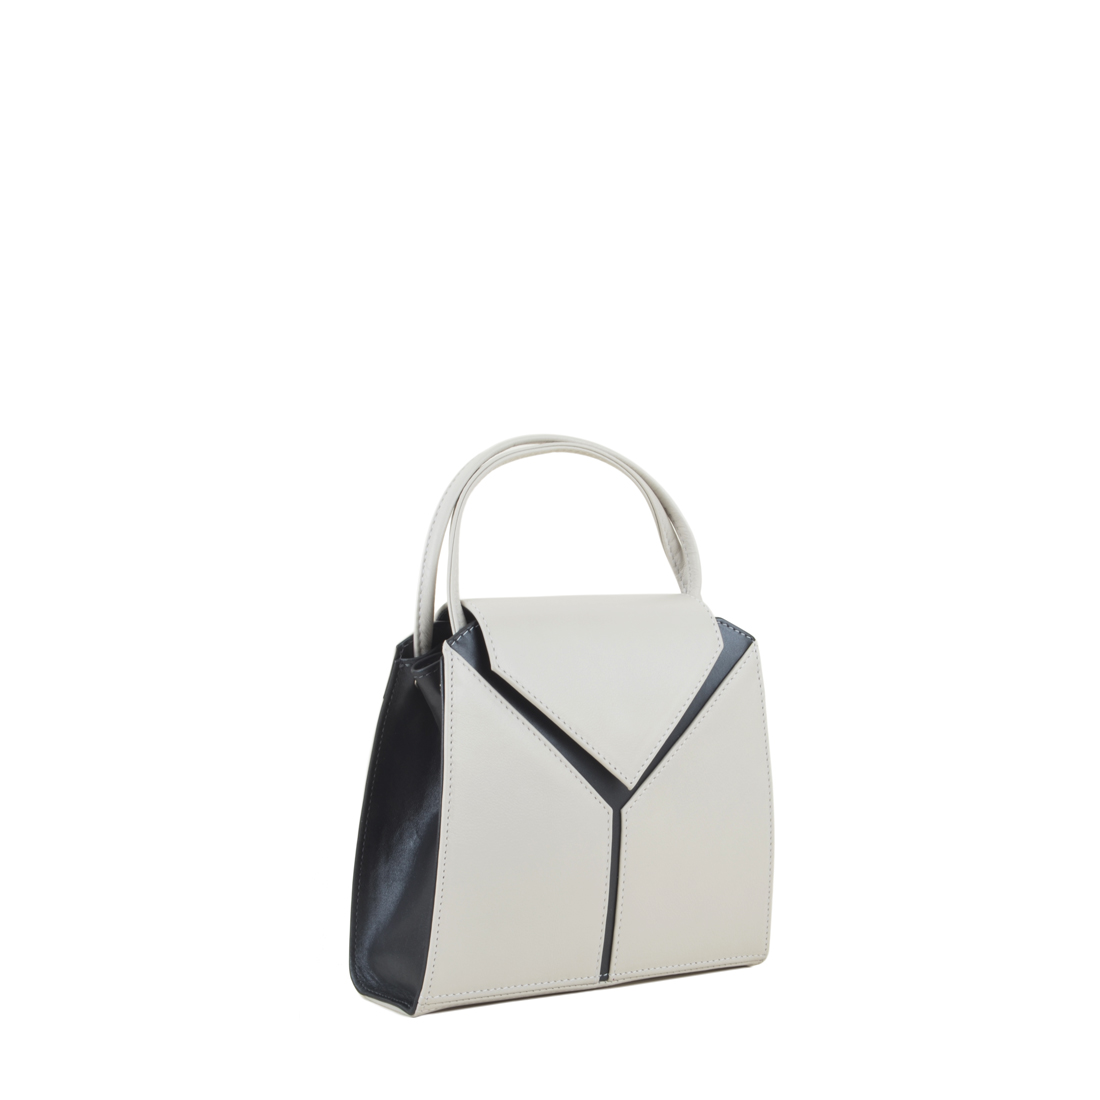 Yasmin Polvere Leather Evening Shoulder Bag